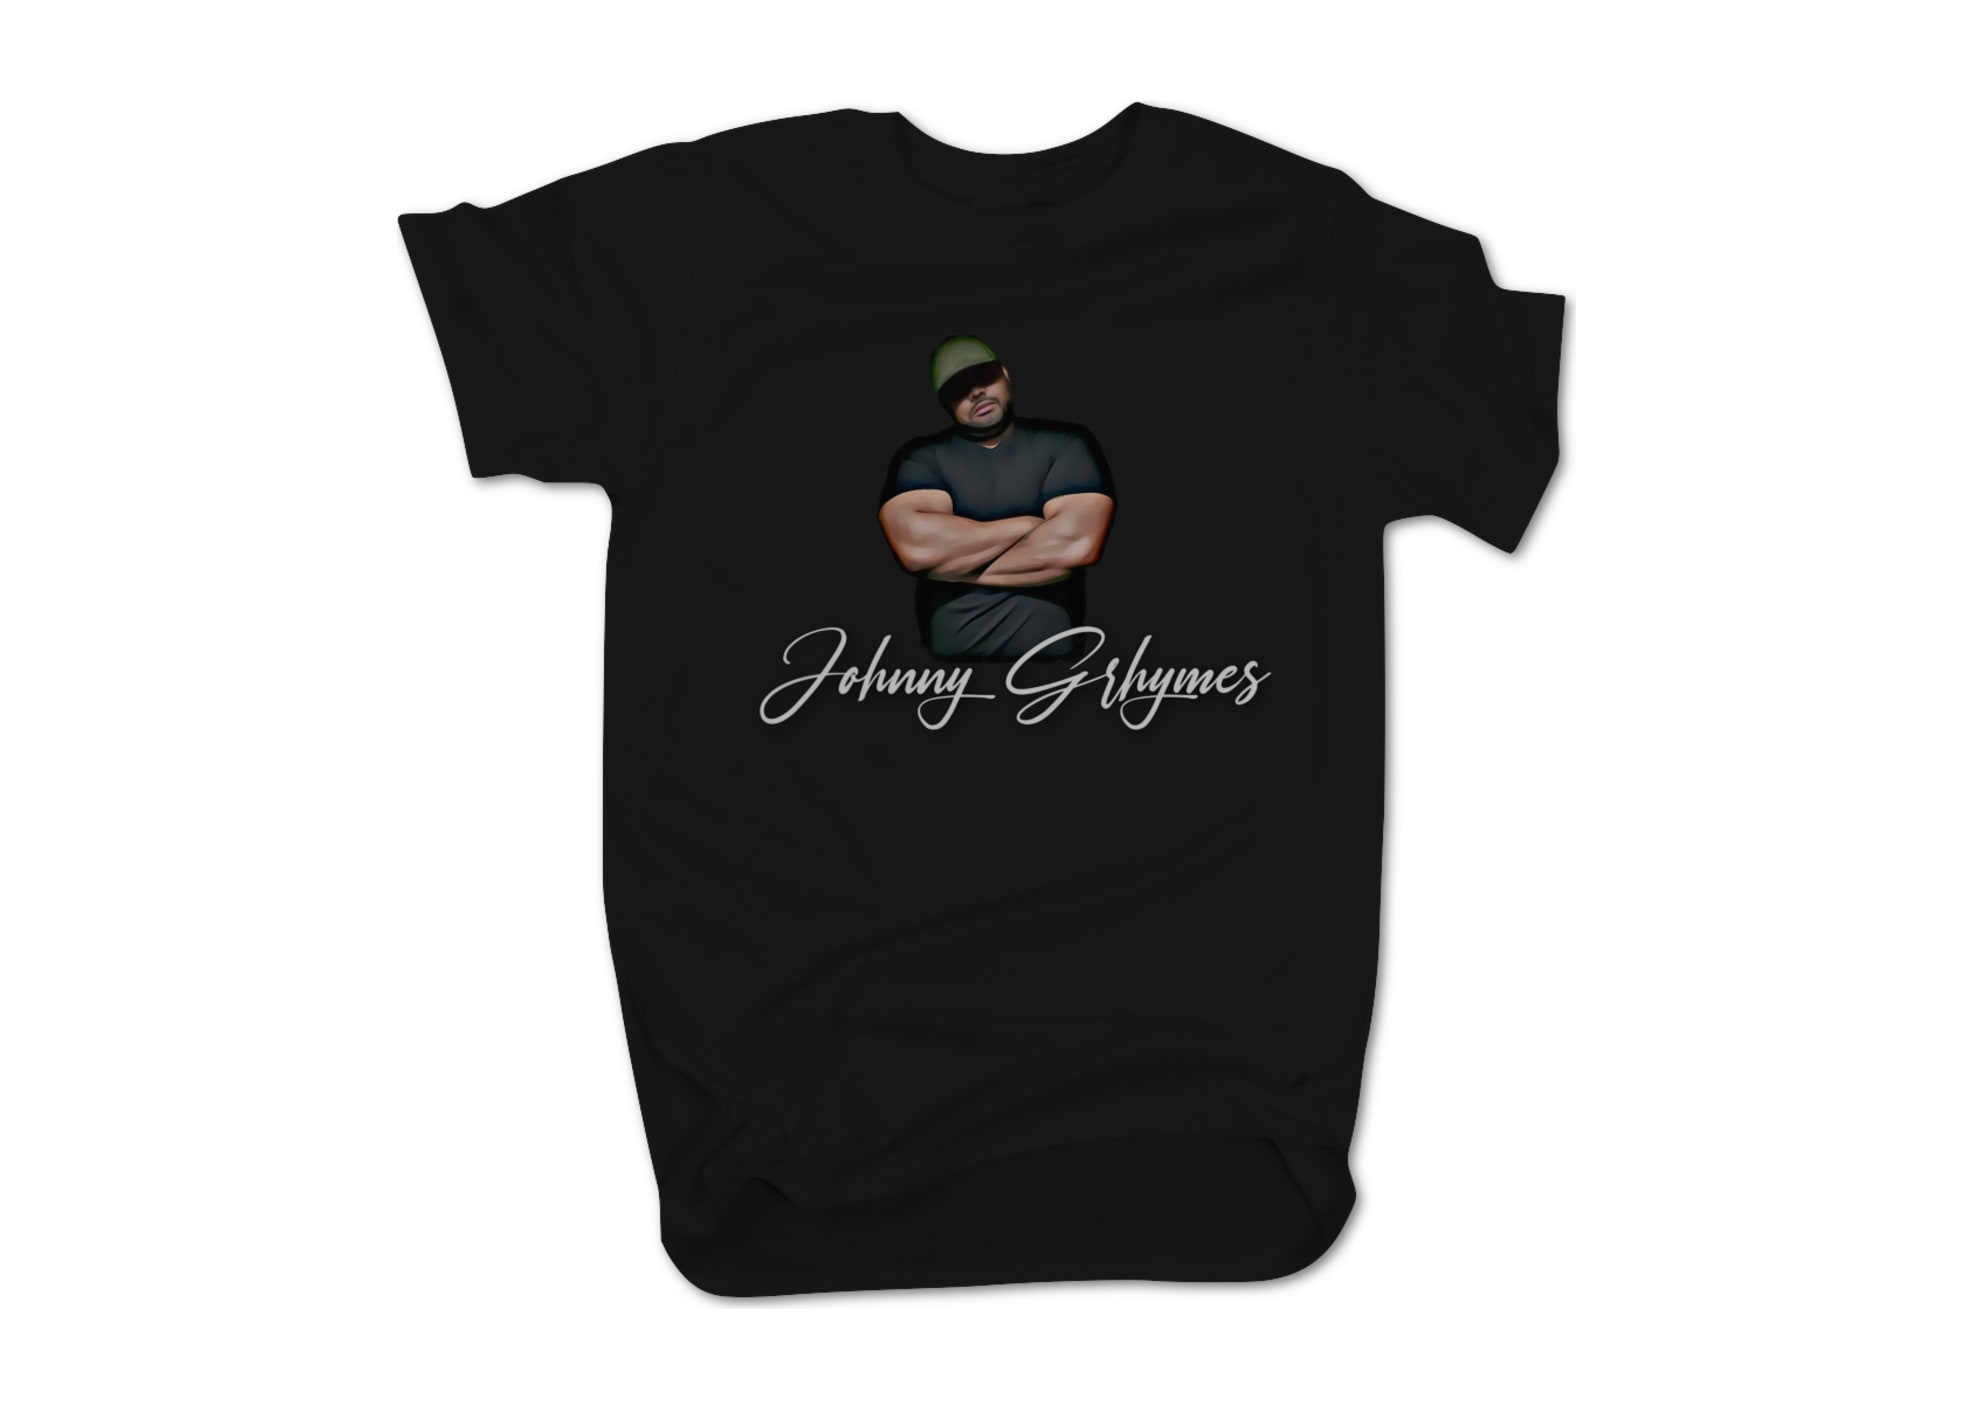 Johnny grhymes crossed logo 1598465314